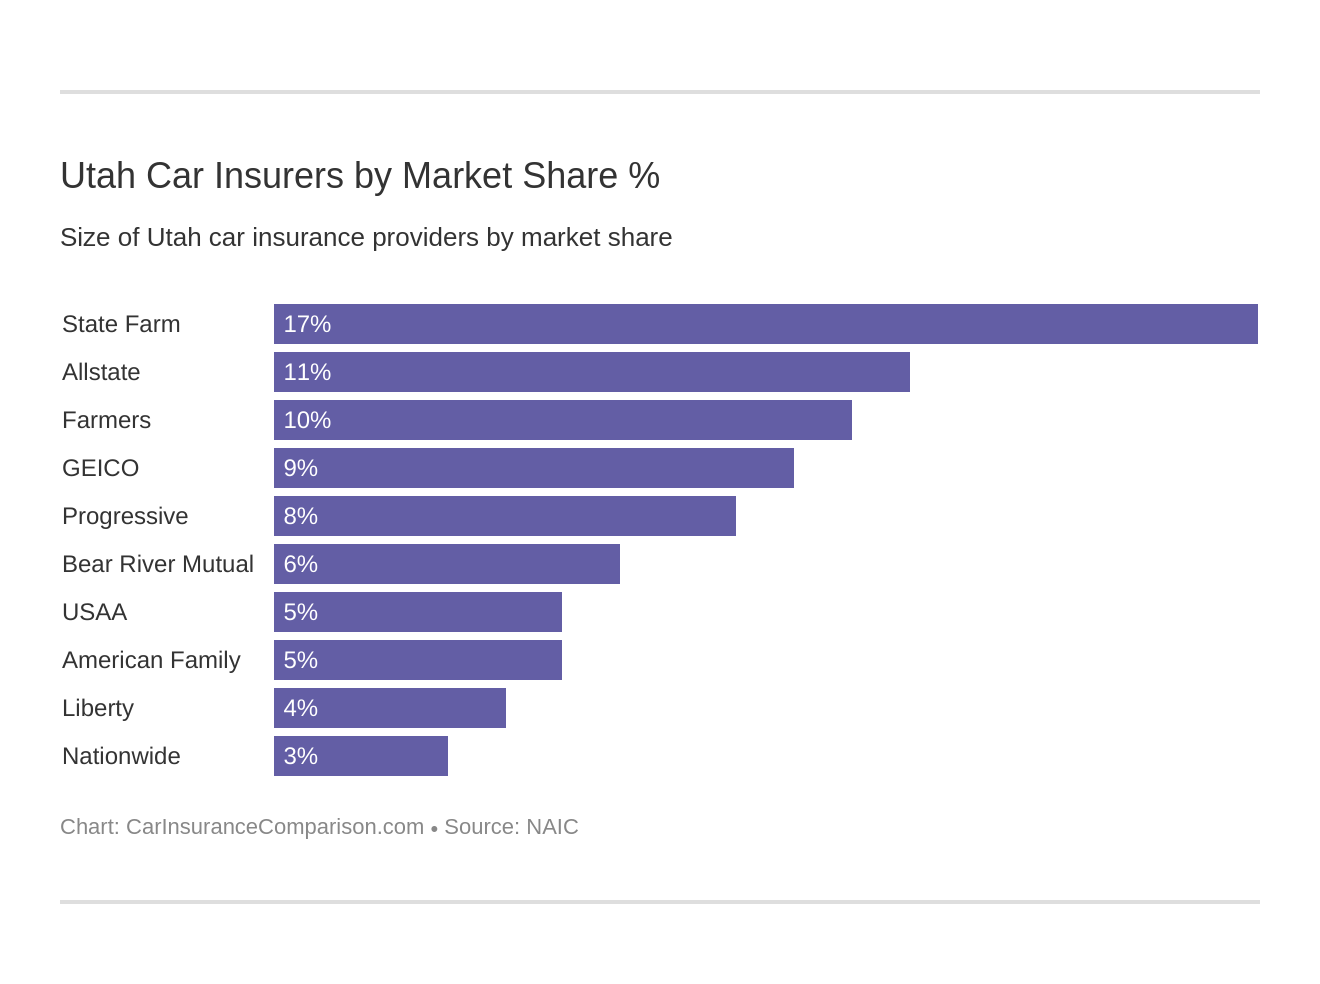 Utah Car Insurers by Market Share %